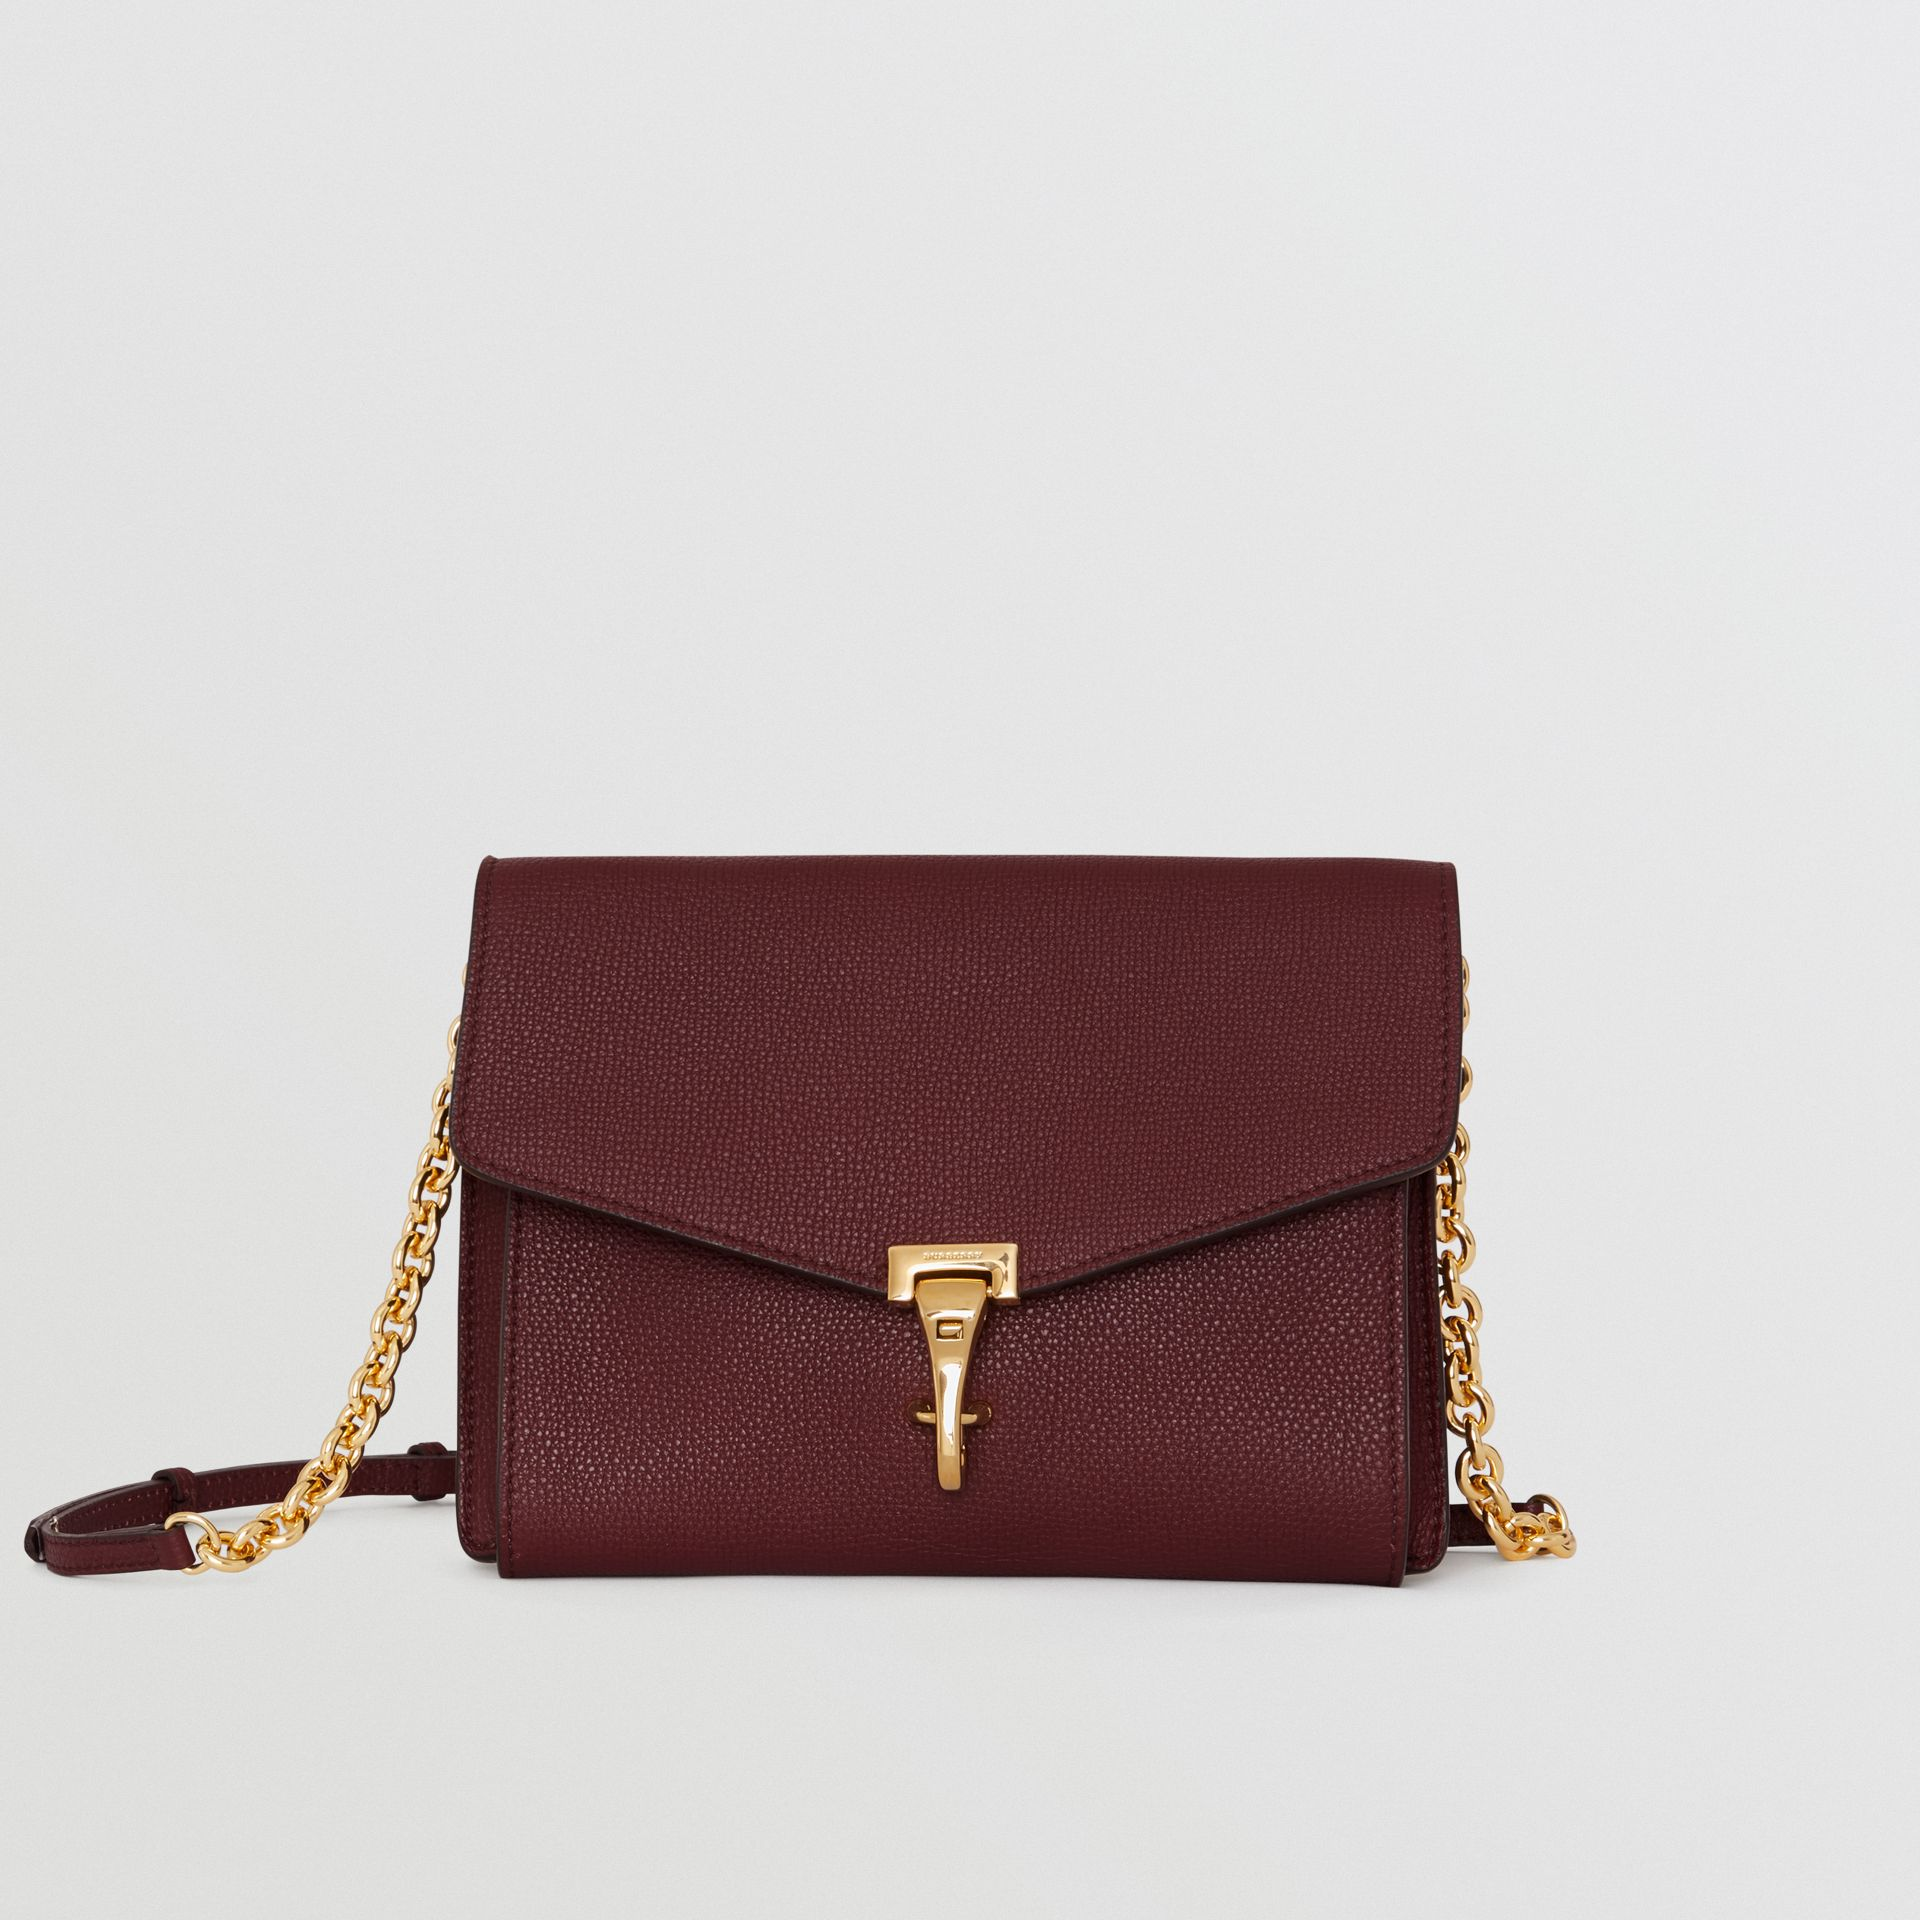 Small Leather Crossbody Bag in Mahogany Red - Women | Burberry - gallery image 4